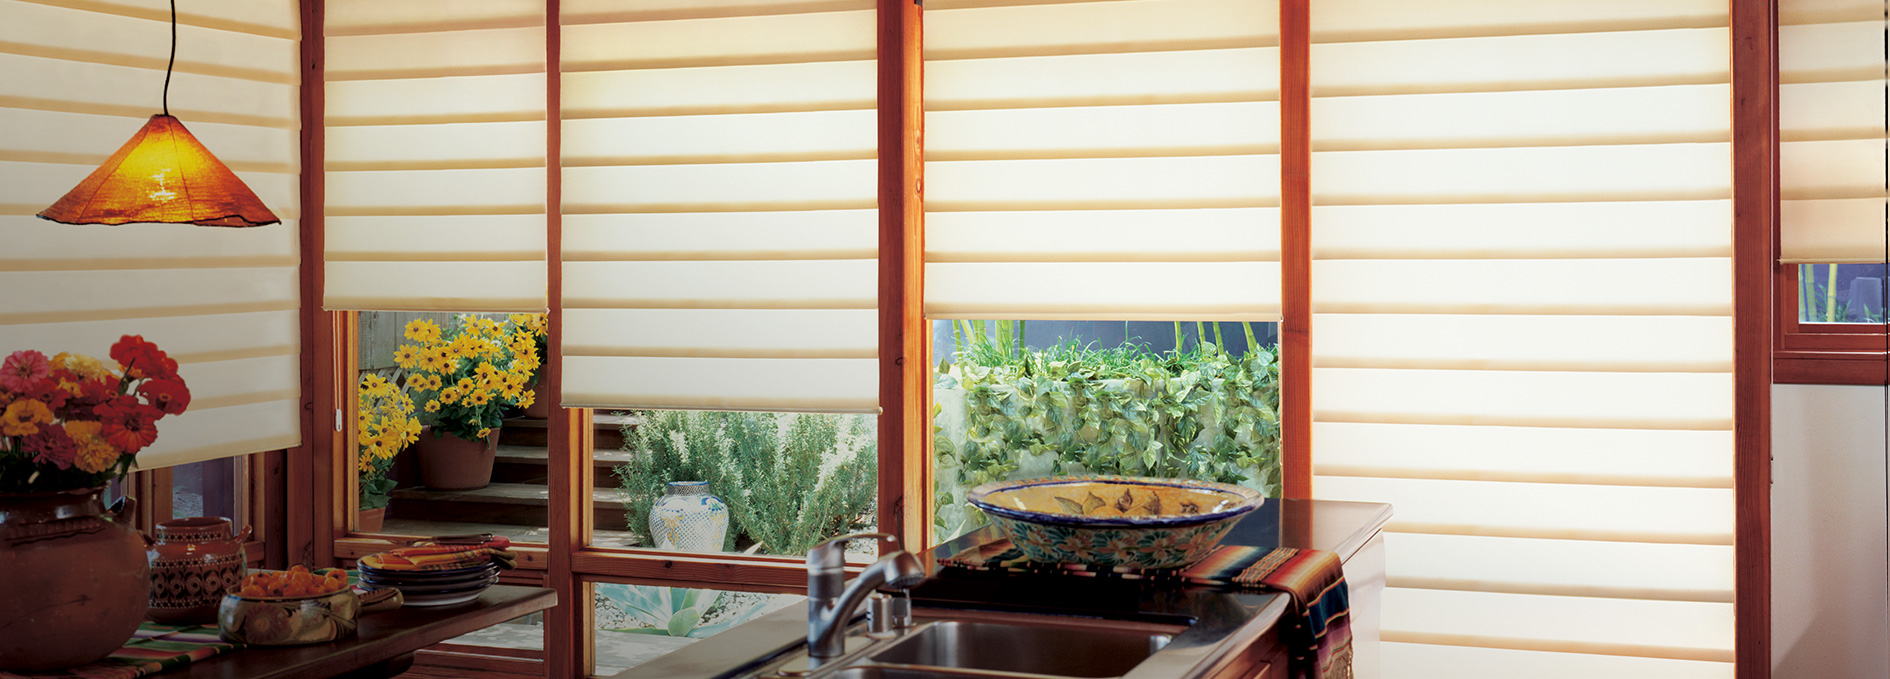 Kitchen window coverings today 39 s window fashions for Window design solutions